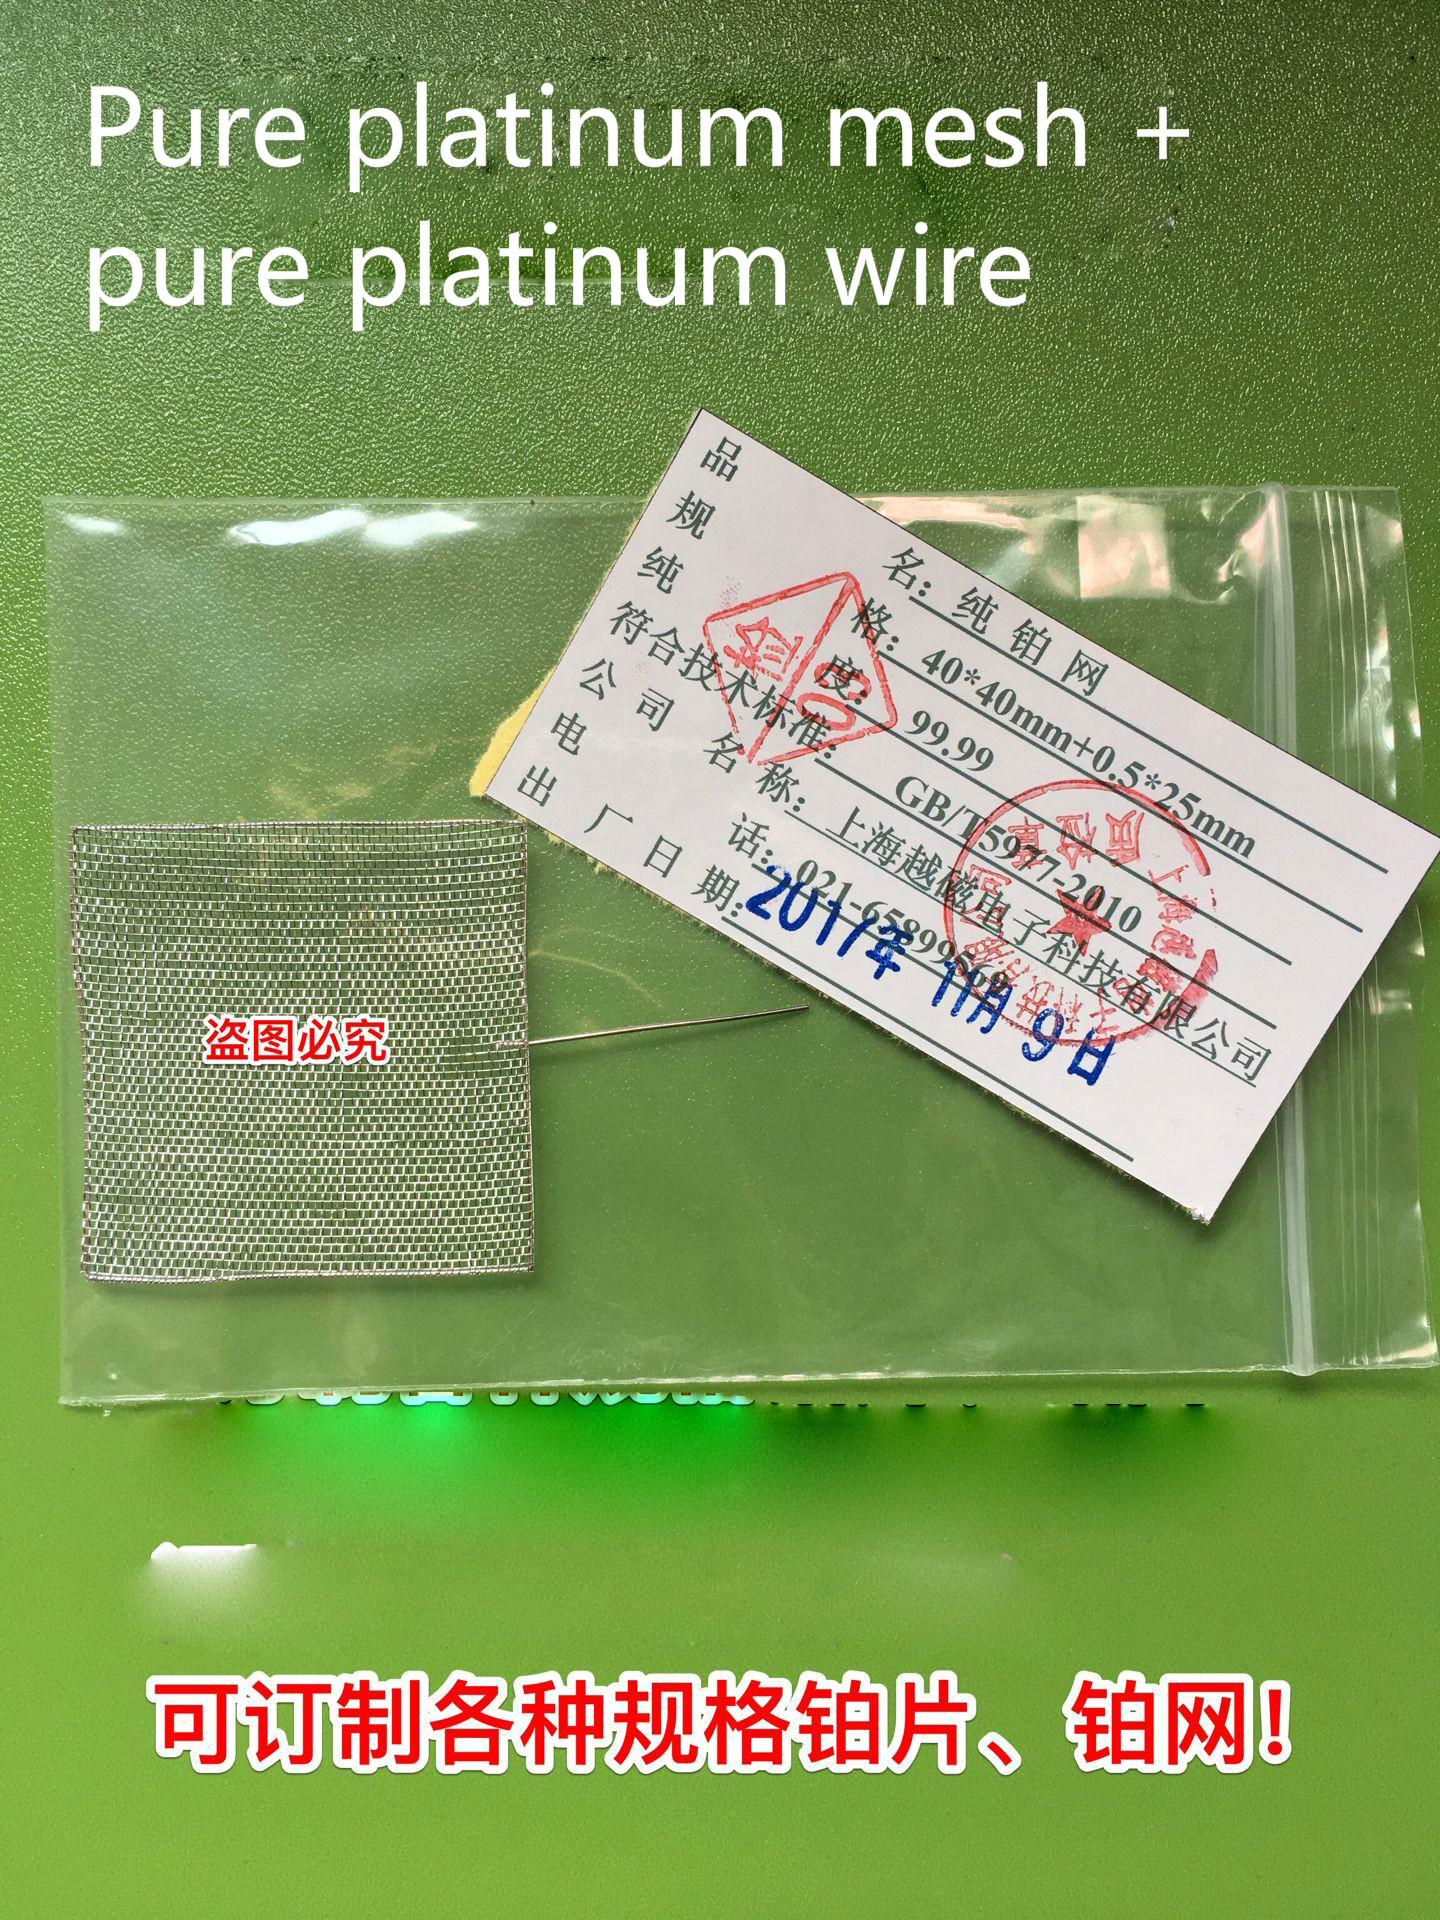 Pure platinum mesh electrochemical platinum mesh electrode border 0.5mm platinum wire, internal network 0.12mm platinum wire